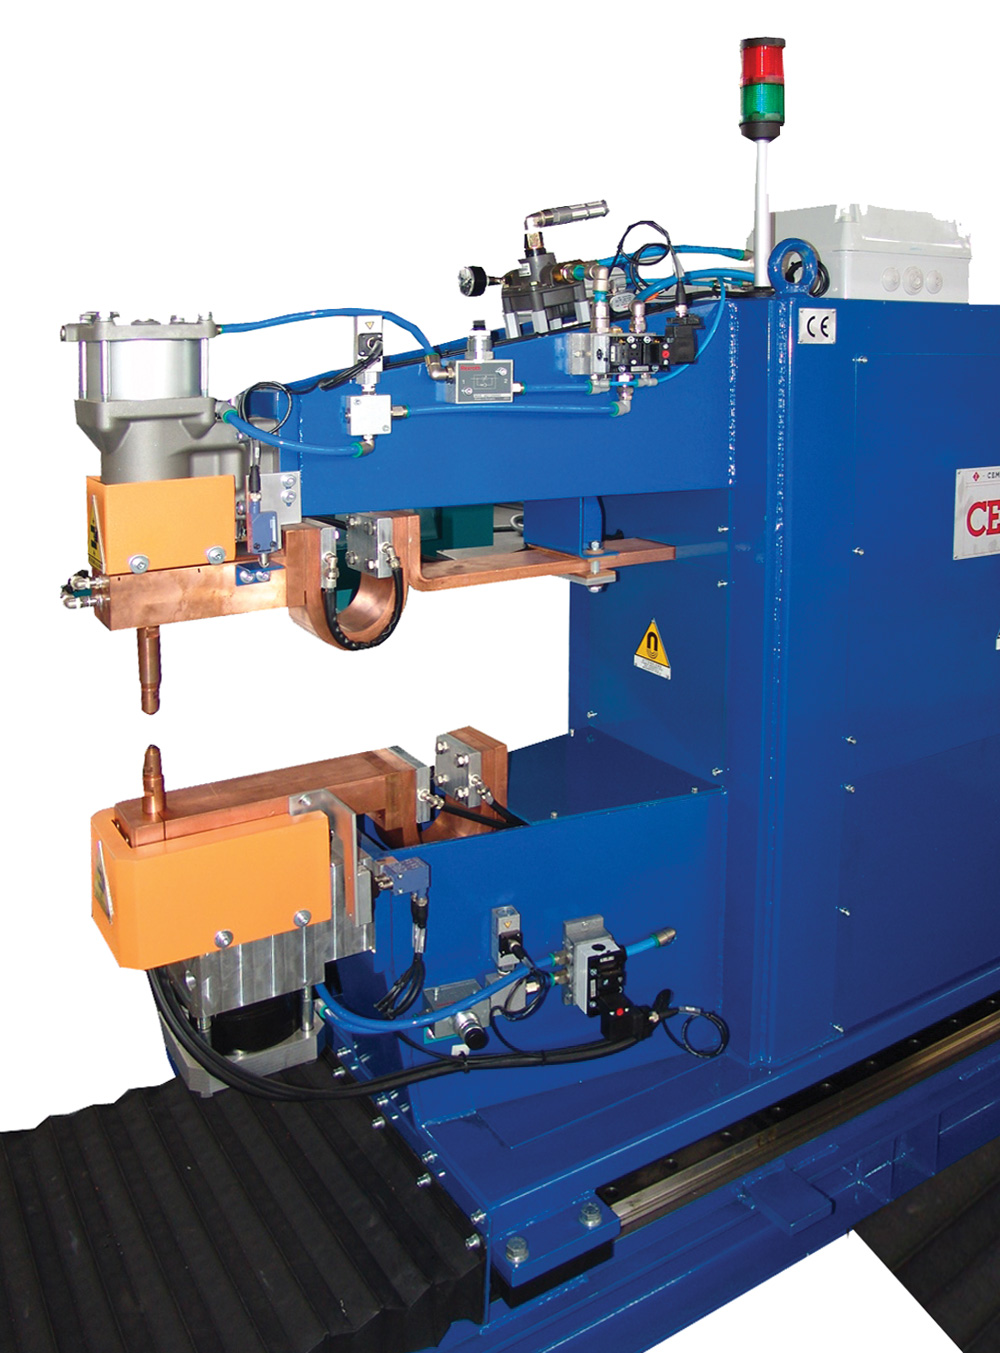 ERW machines for spot and projection welding ROBOSIDE PS